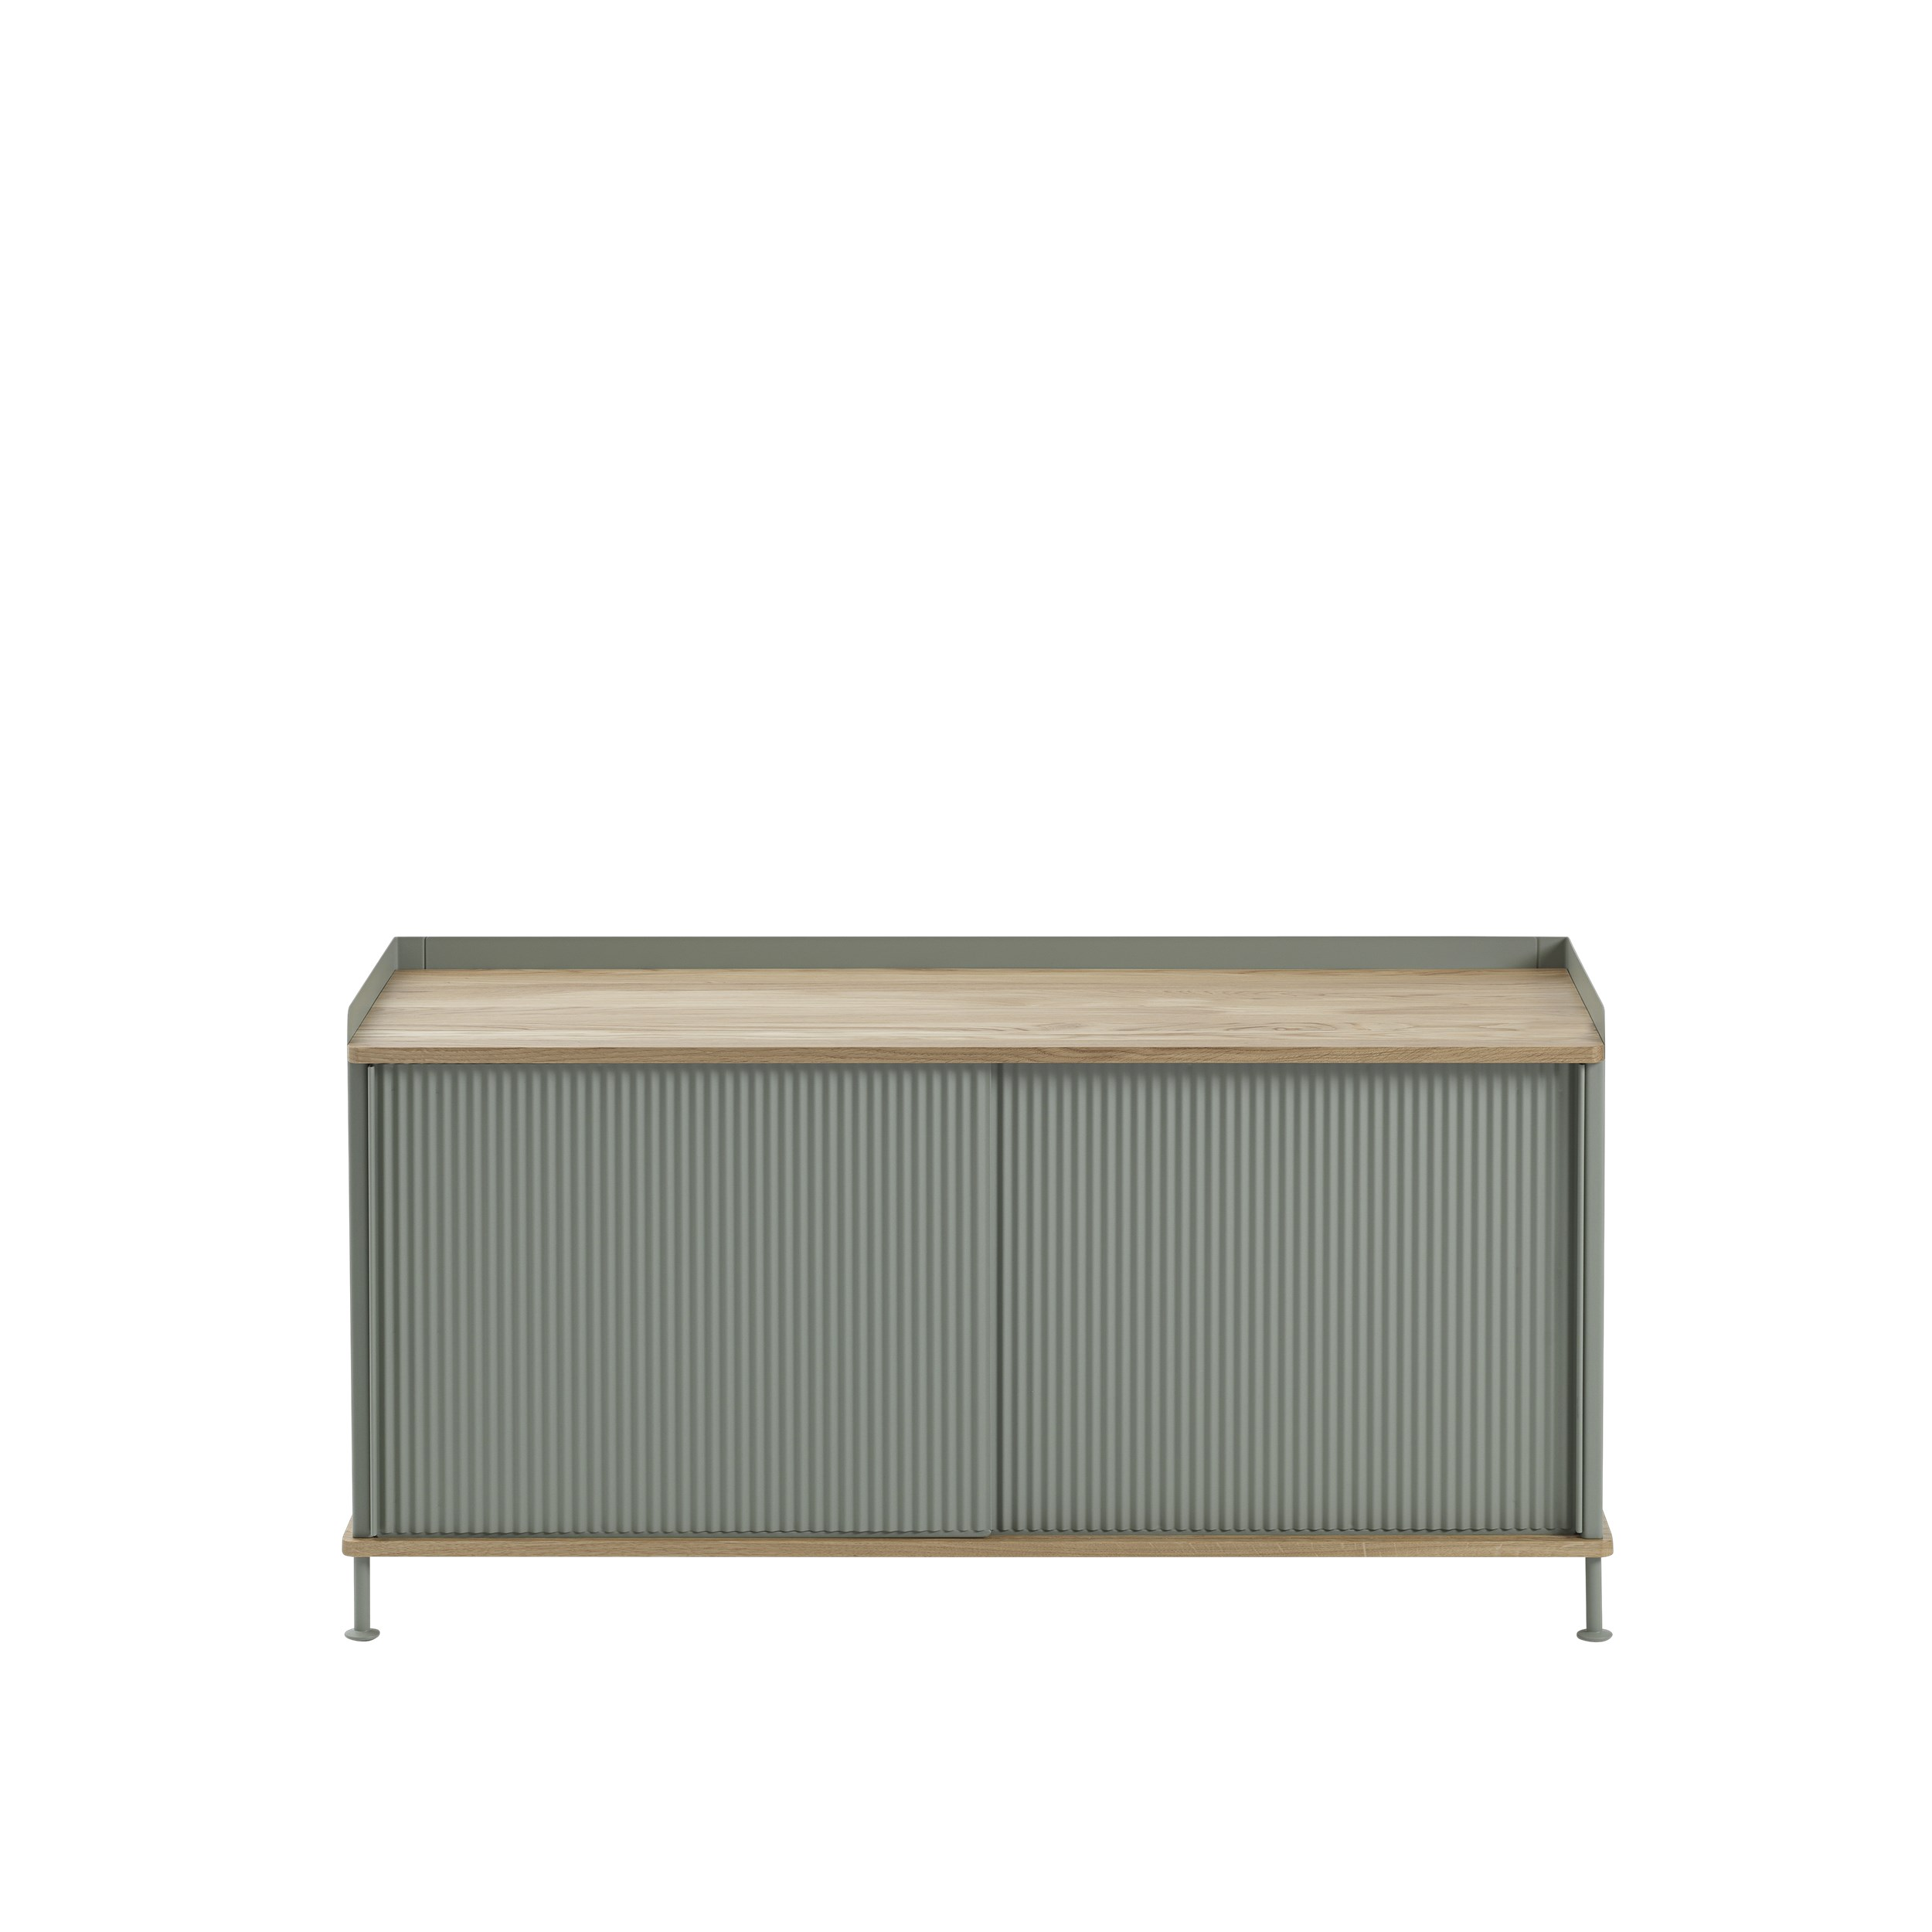 Muuto Enfold Sideboard Low Oak/Dusty Green